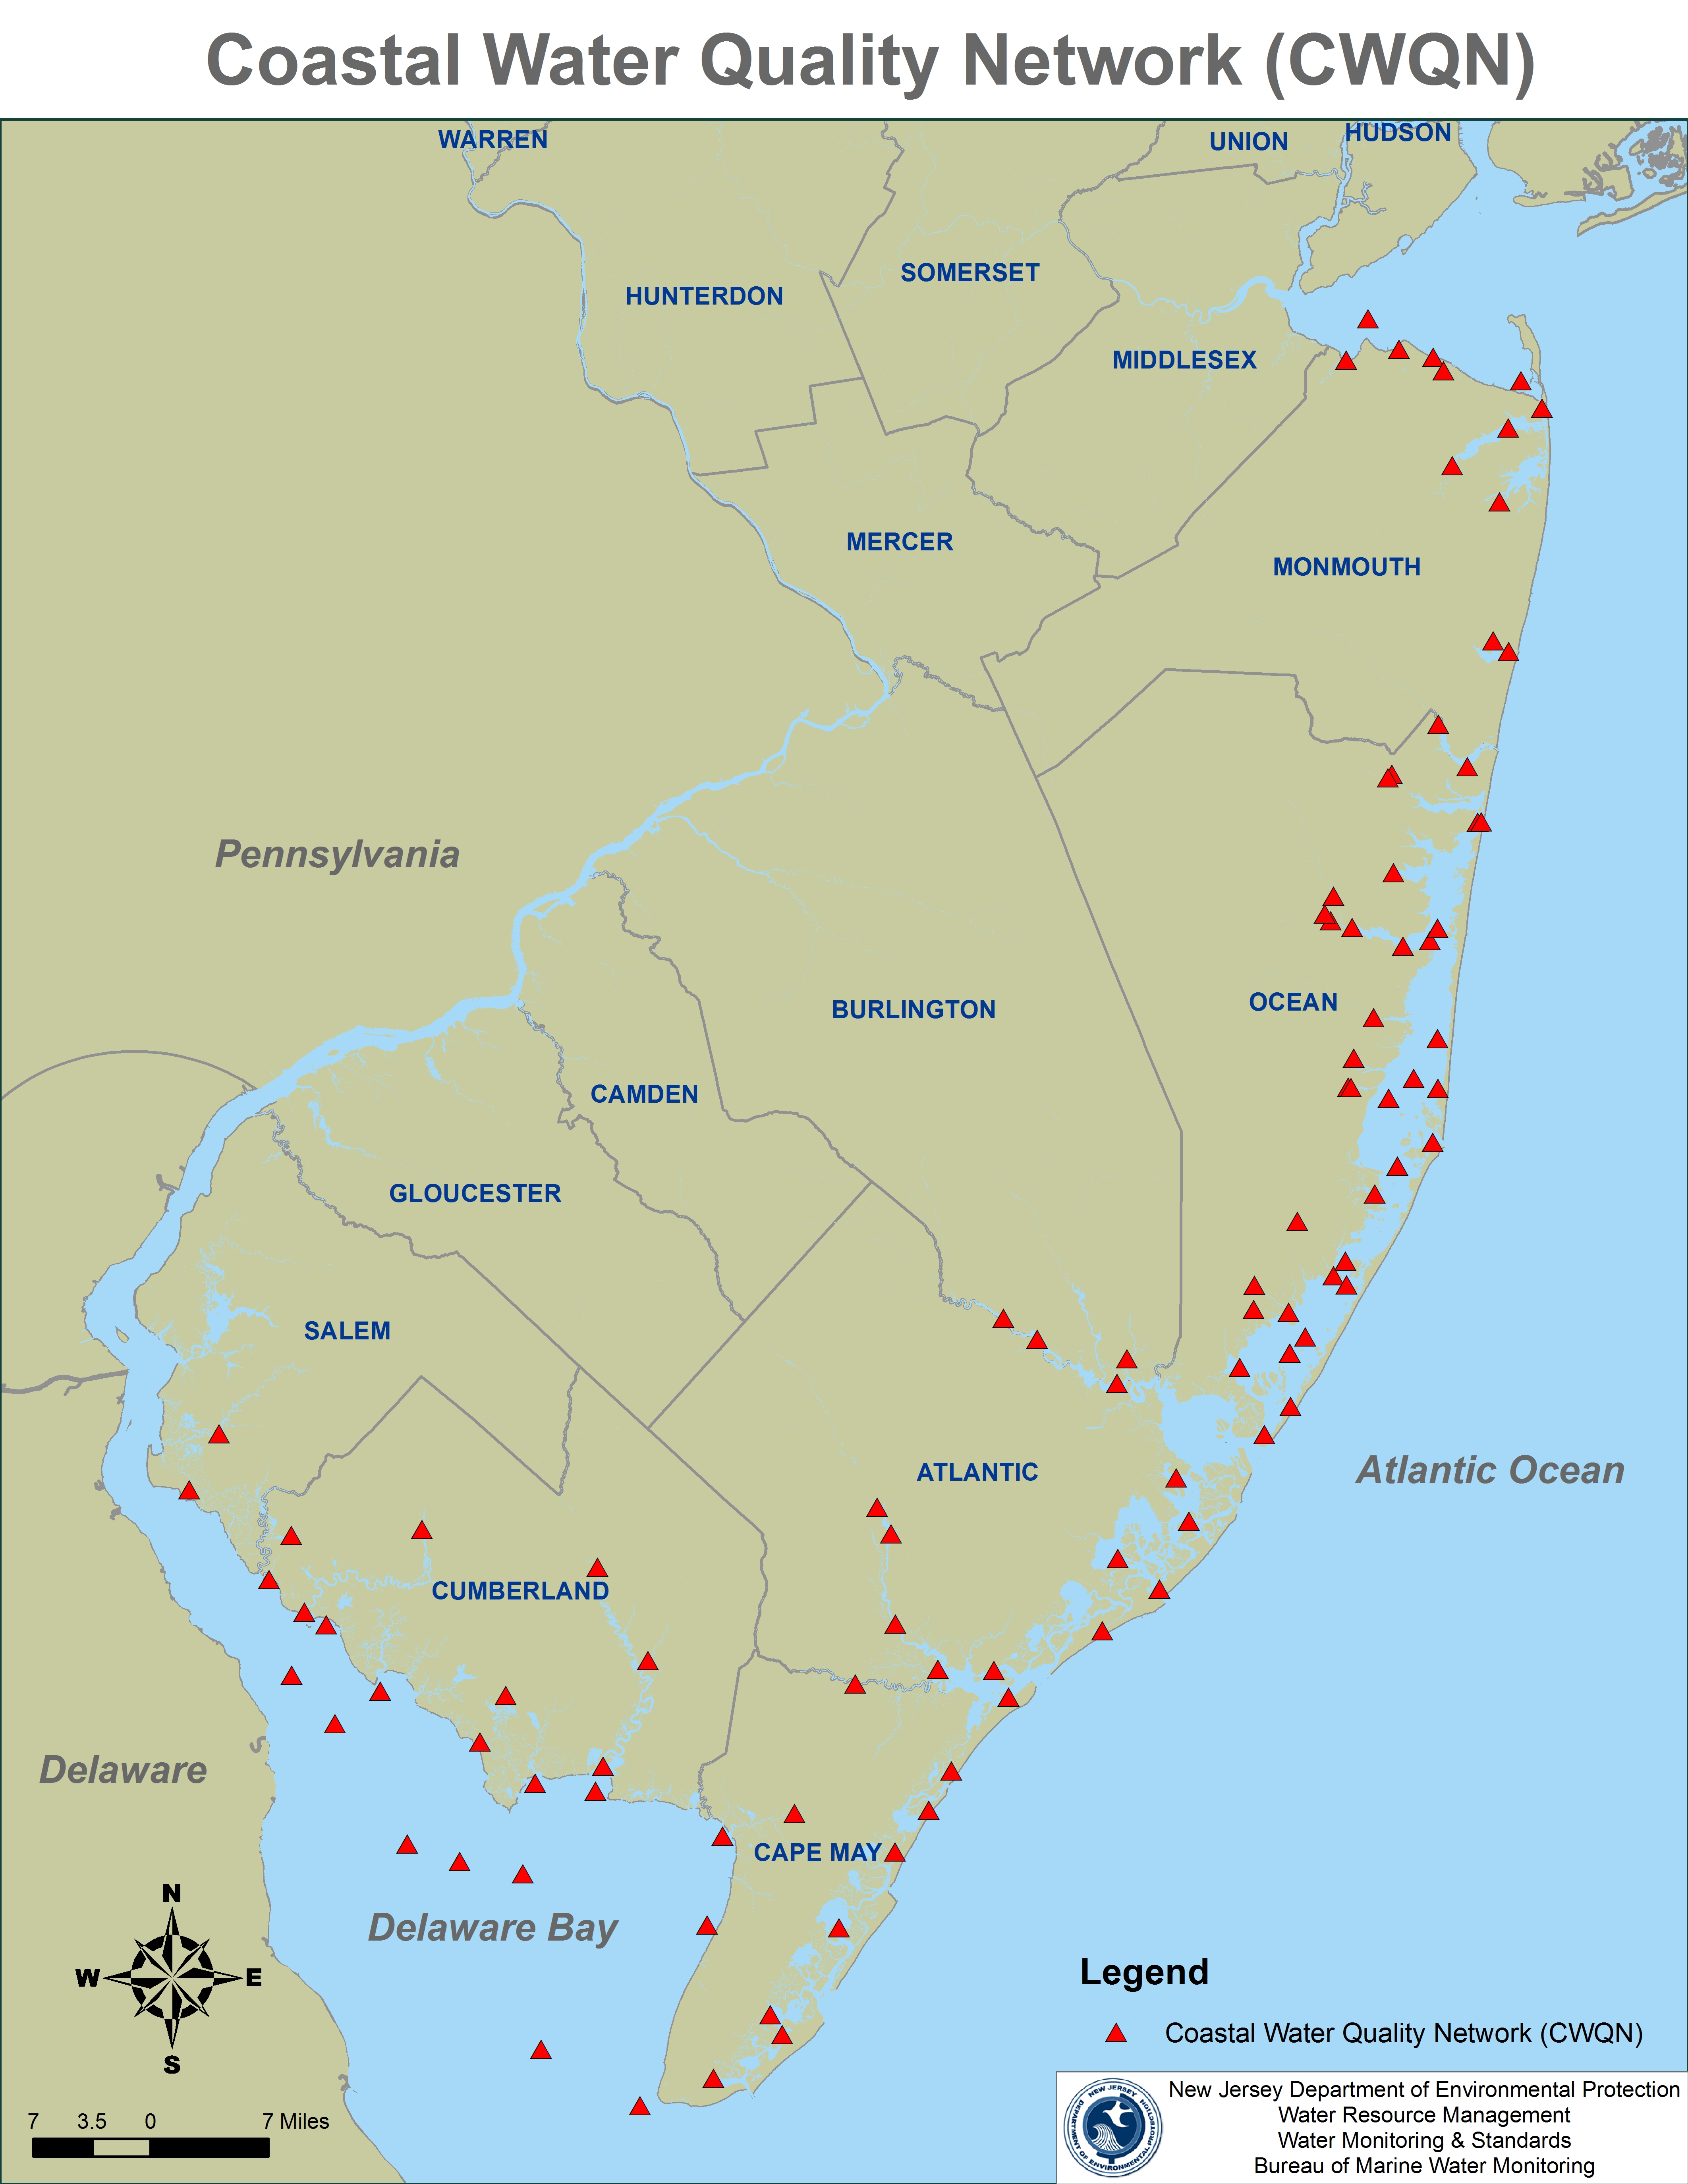 NJDEPDivision of Water Monitoring and Standards